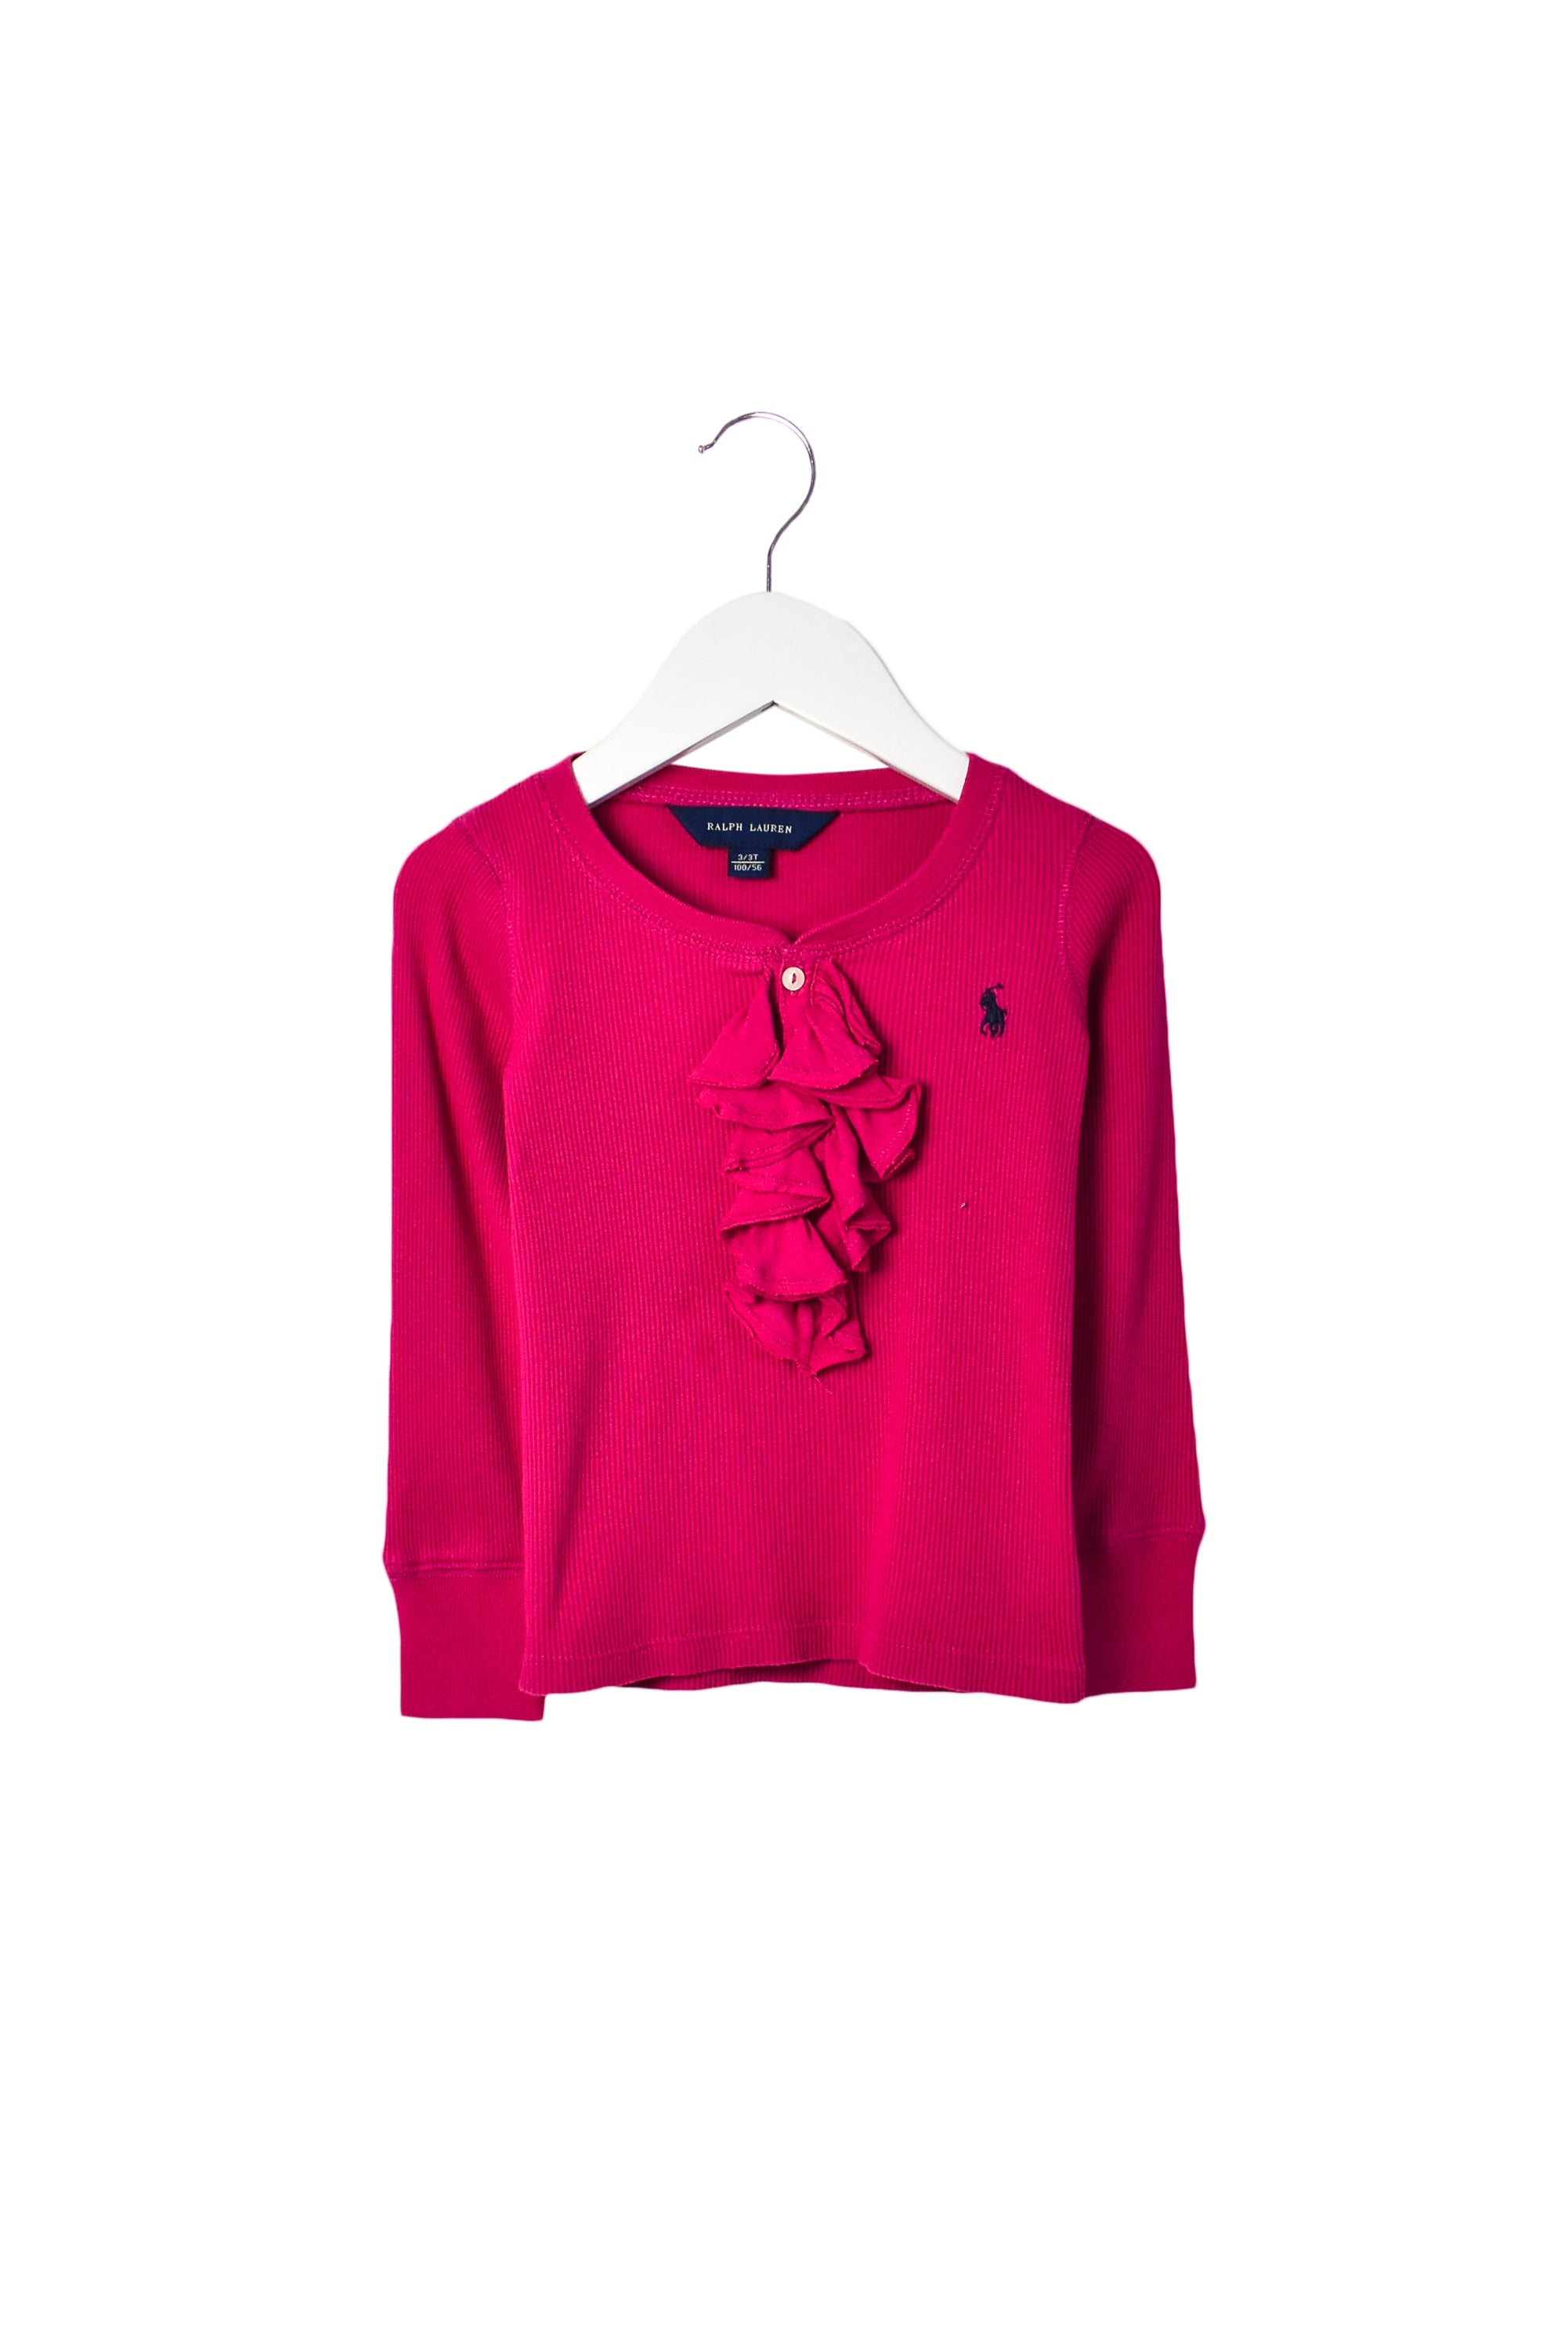 10007135 Polo Ralph Lauren Kids ~ Top 3T at Retykle